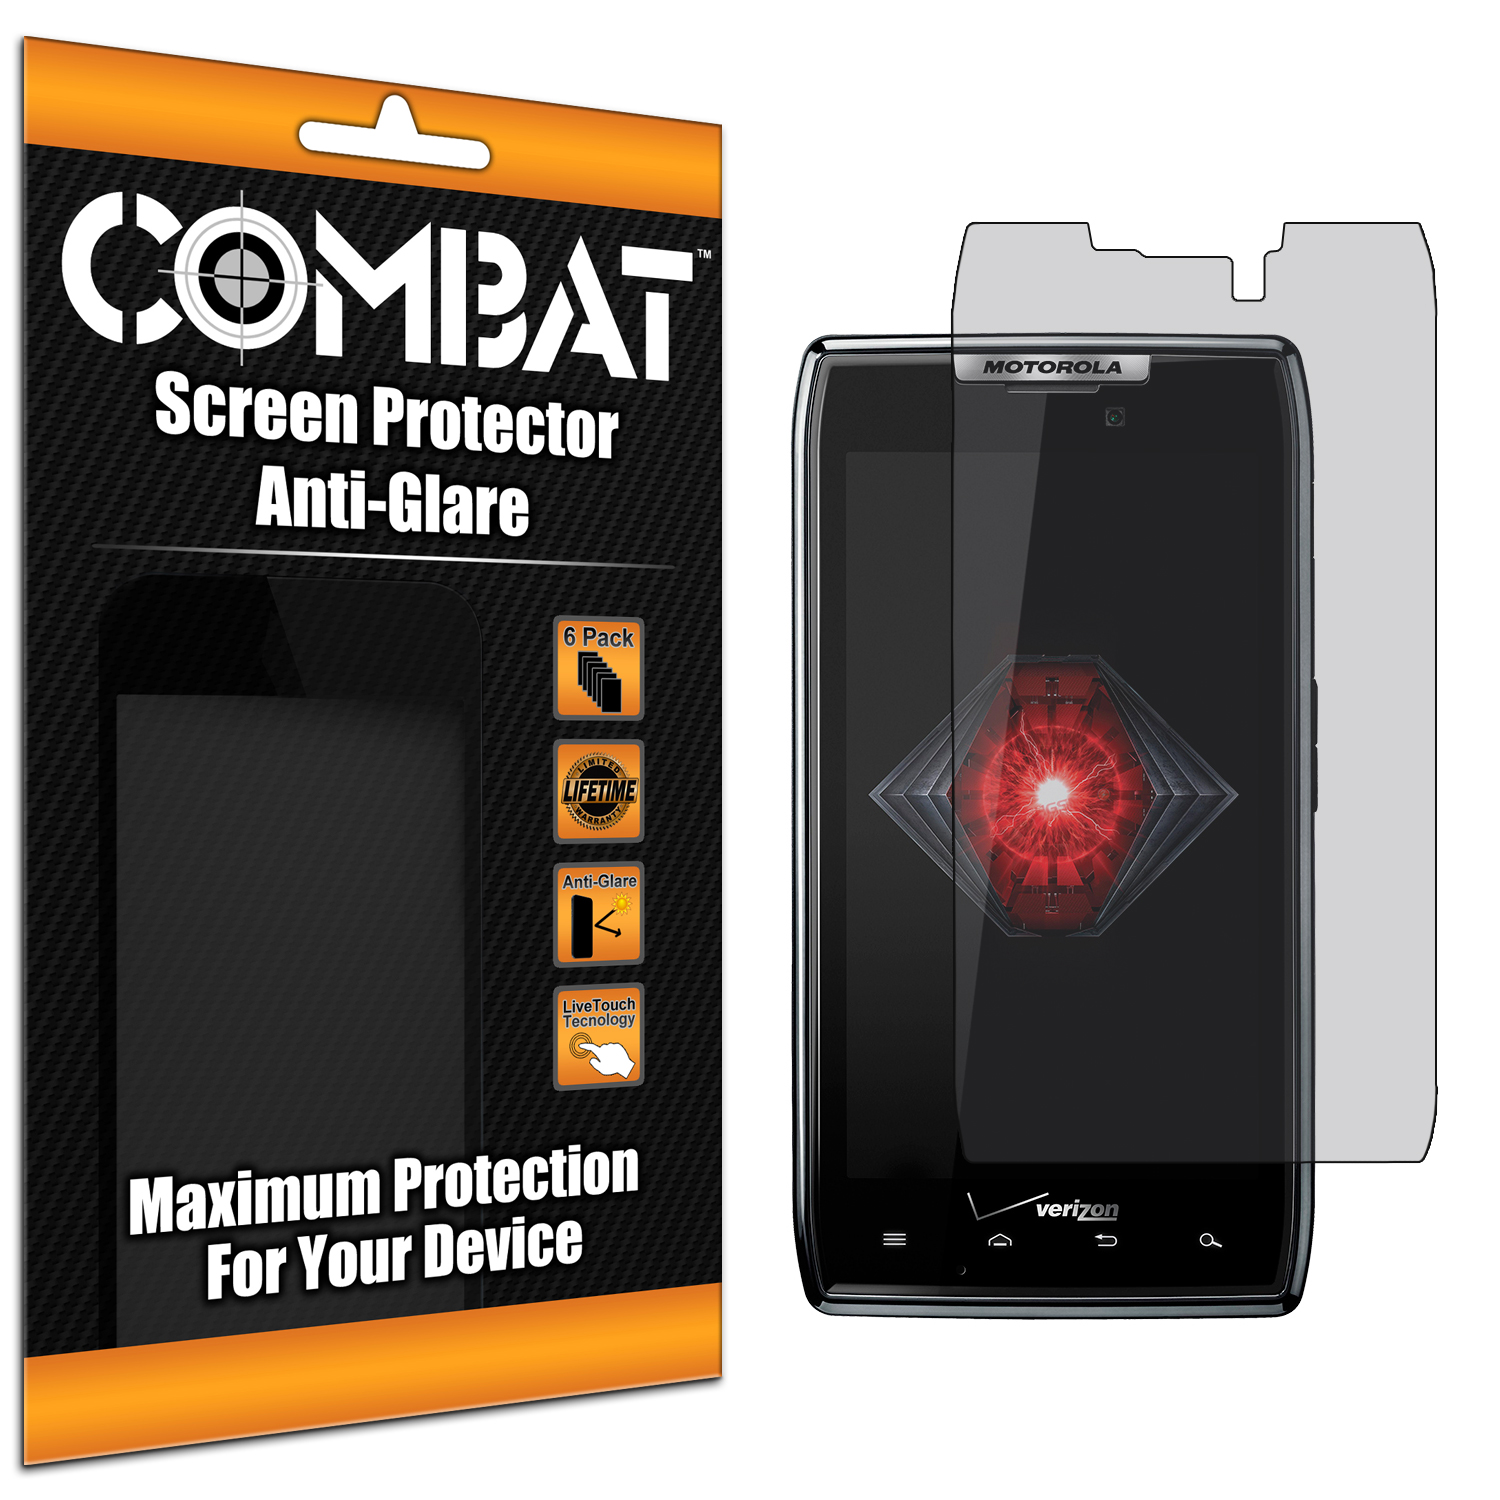 Motorola Droid Razr XT912 Combat 6 Pack Anti-Glare Matte Screen Protector